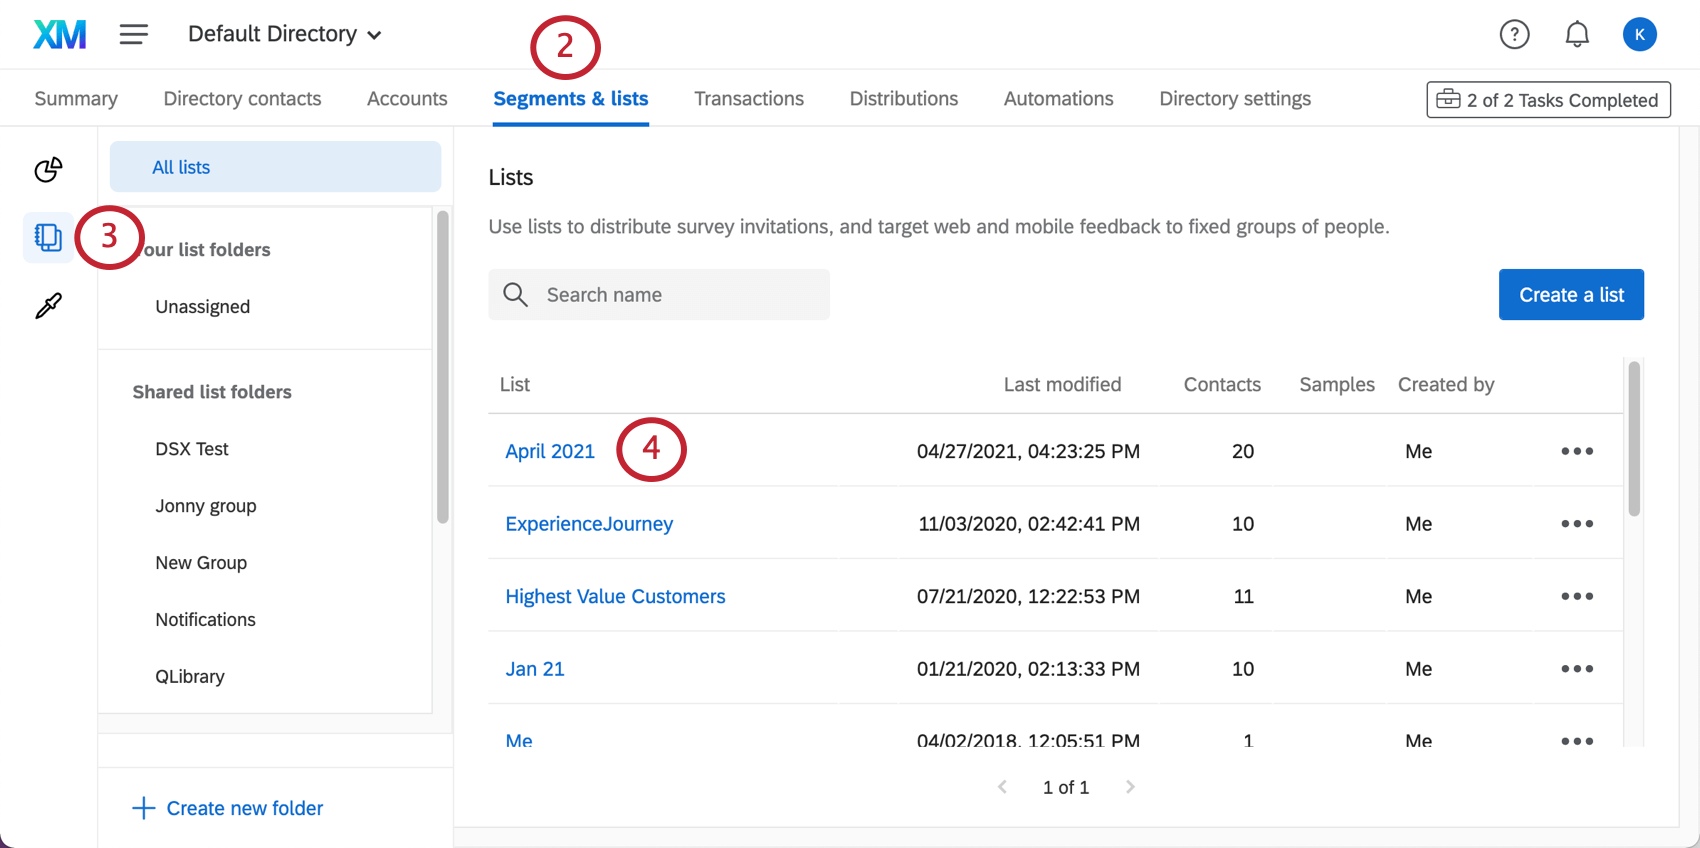 The lists section of the segments and lists tab is open